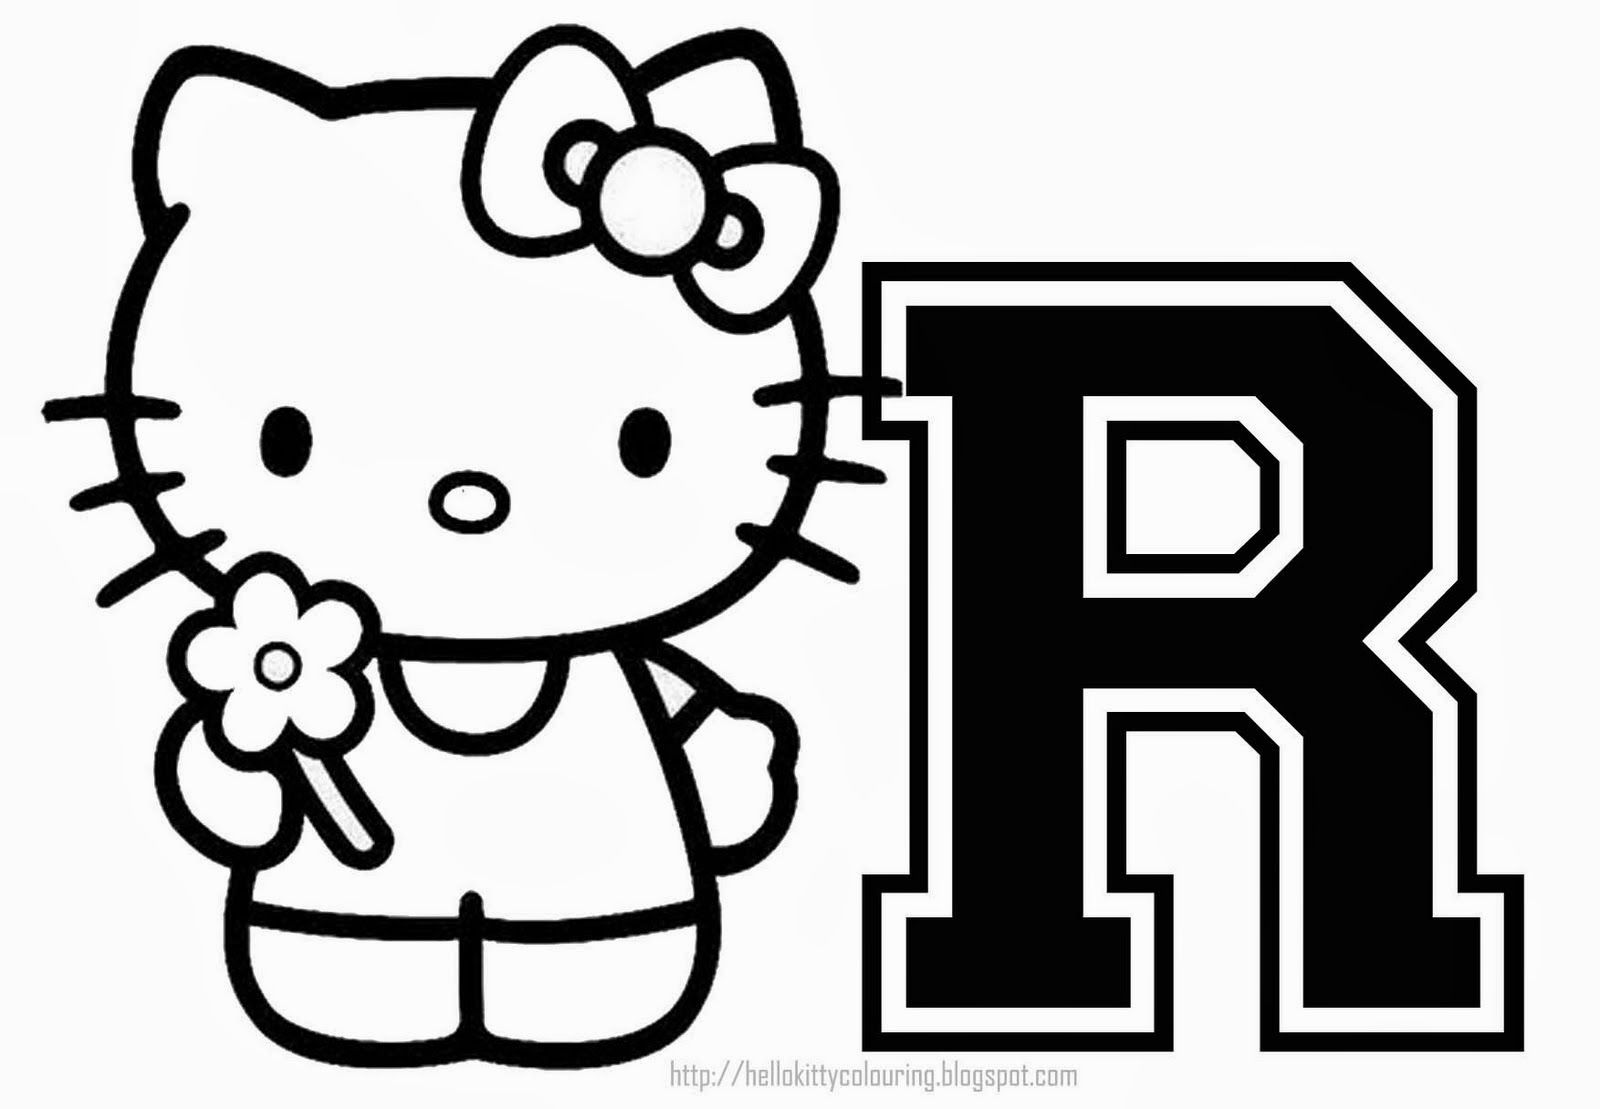 Hello kitty colouring pages photos 22443 hd widescreen wallpapers